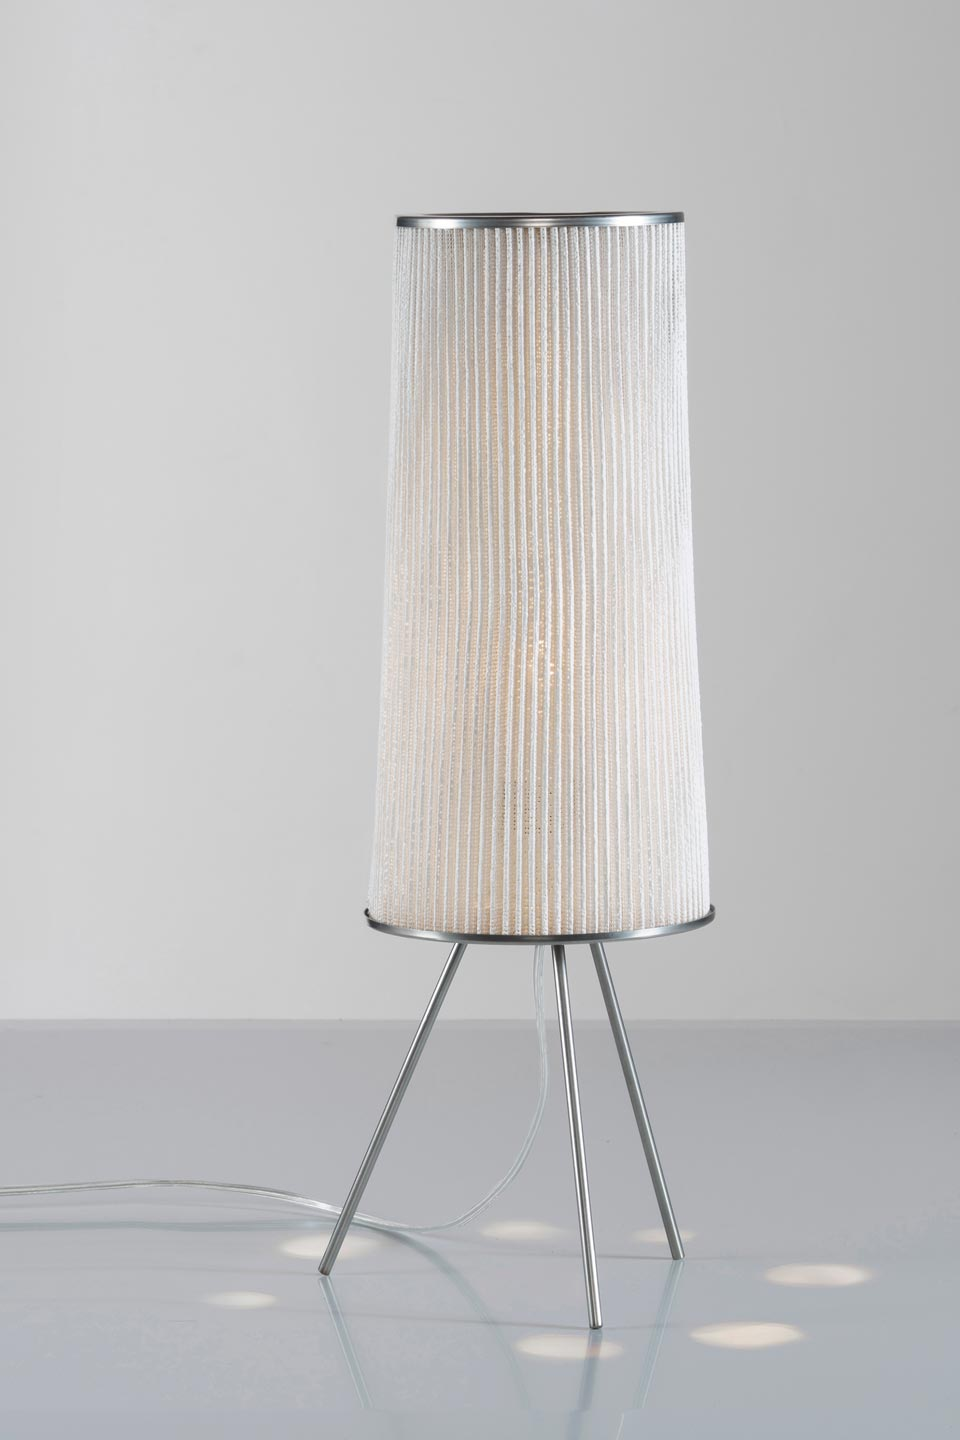 Ura lampe de table contemporaine blanche . Arturo Alvarez.